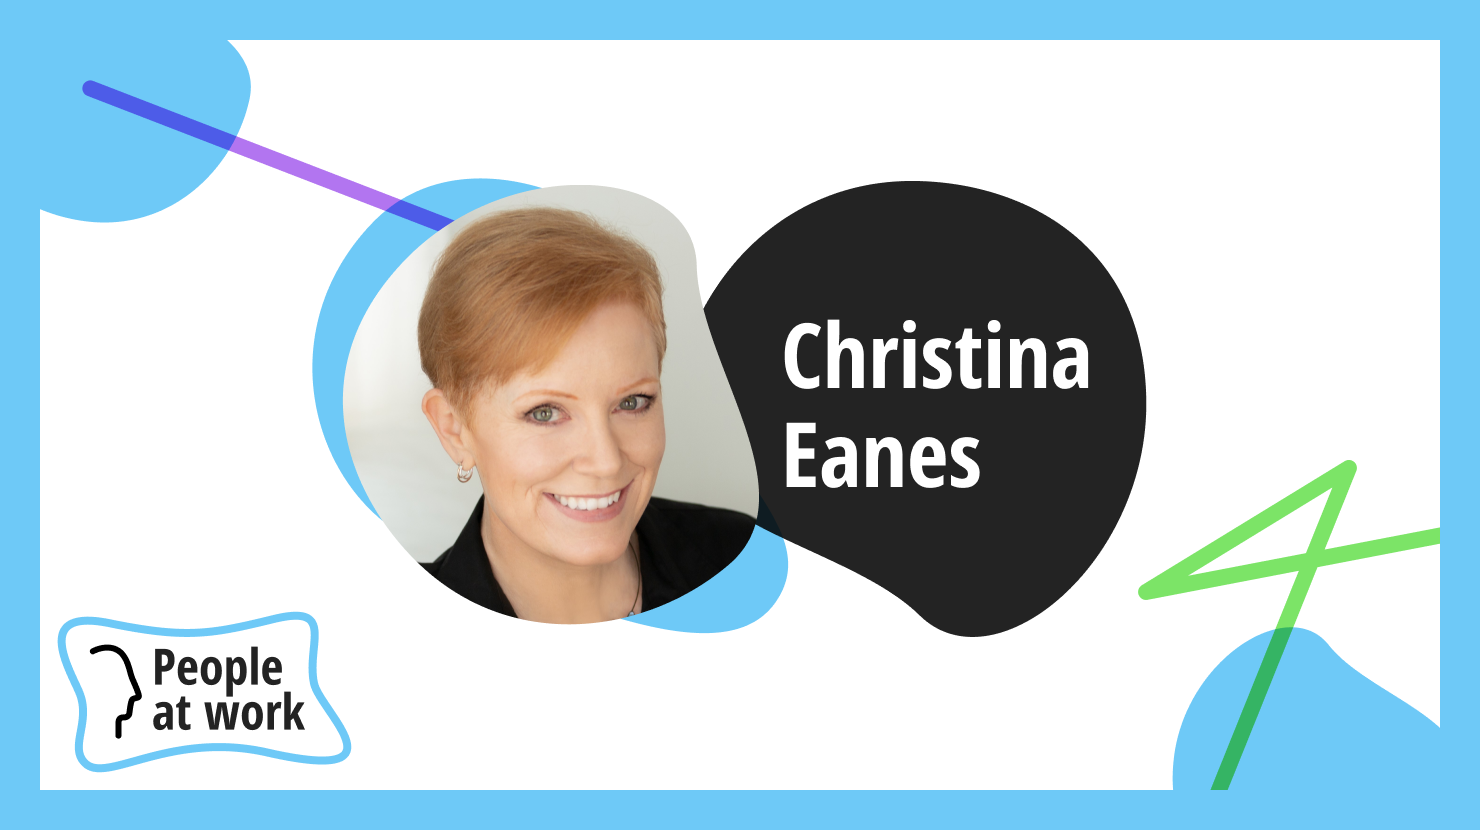 Using escape rooms as a tool for self-improvement with Christina Eanes